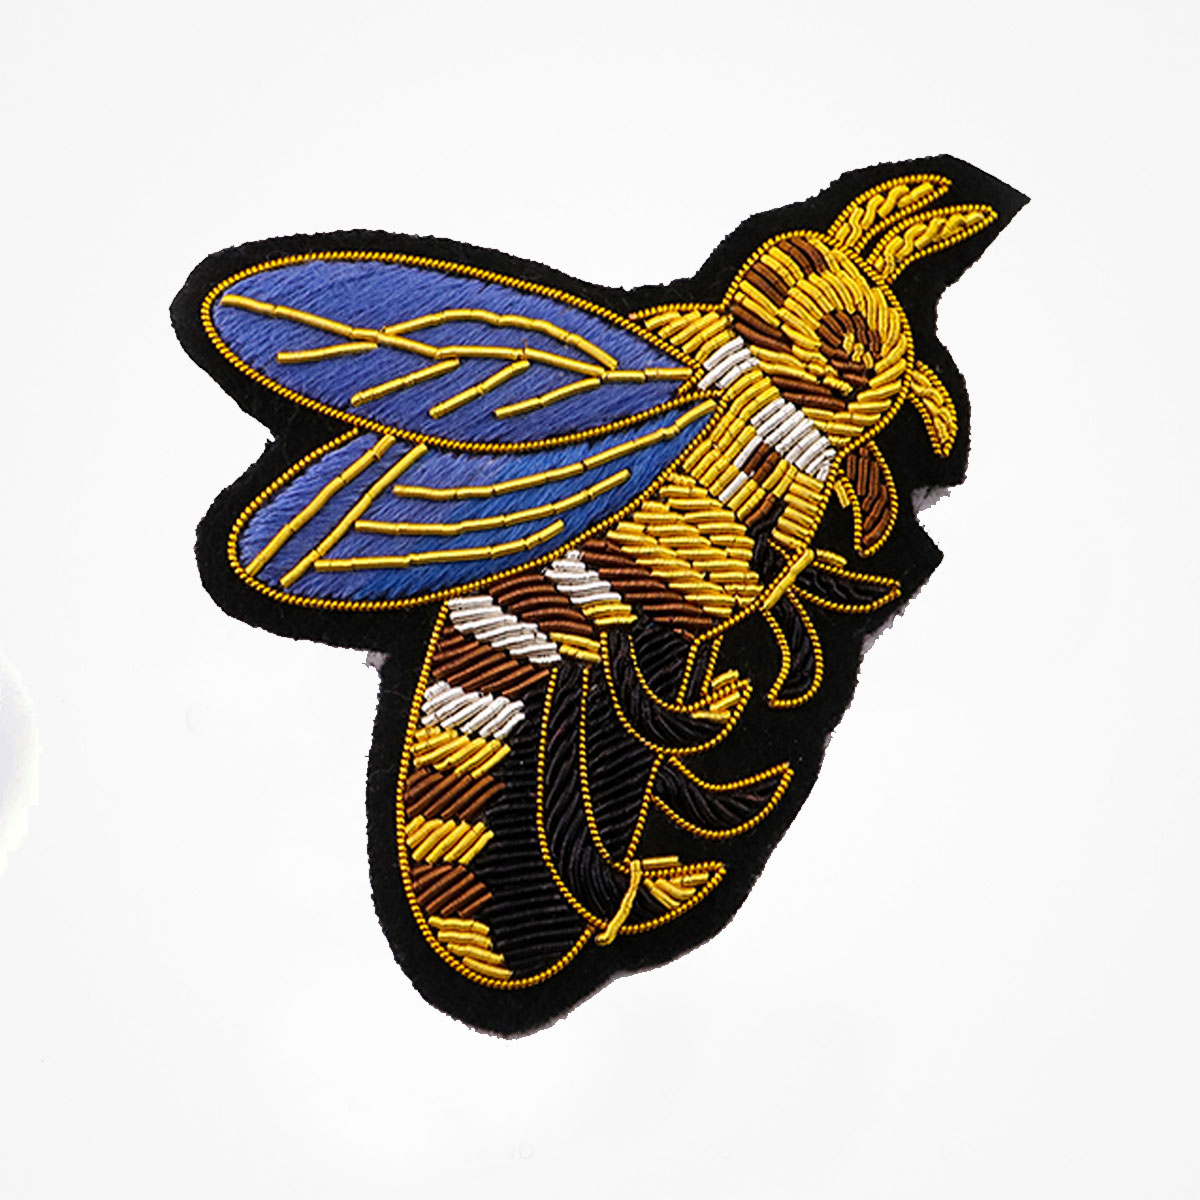 Hand Embroidered Honey bee Patch. Handmade Insects Bullion Wire Badge Sewn on Black Felt. - Fashionable 3D embroidered look Made by skilled artisans Bullion wire and silk thread hand Stitched on Black color Felt Available in gold and silver colors Size = 3.5 inches sew-on backing: Perfect for caps, sports jacket, leather jackets, blazer coat, Blazer Pocket, shirts uniforms, Accessories and many More Pin backing: easy to removable 5